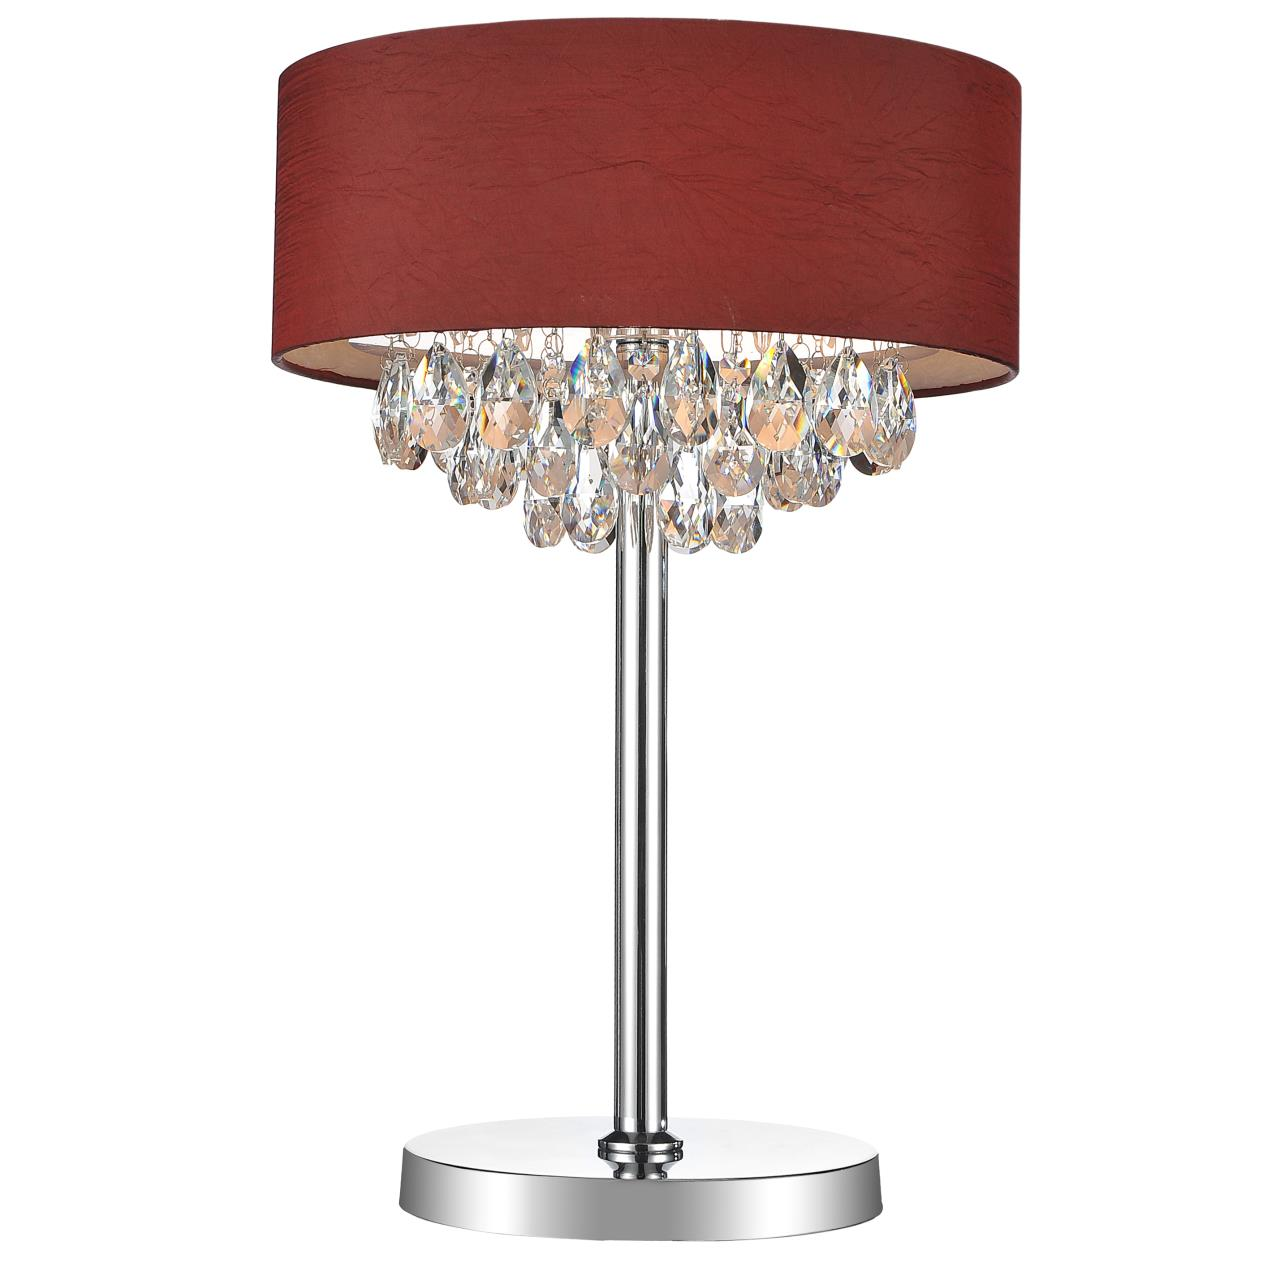 Red table lamp shade - 14 Struttura Modern Crystal Round Table Lamp Double Shade Wine Red Fabric 3 Lights